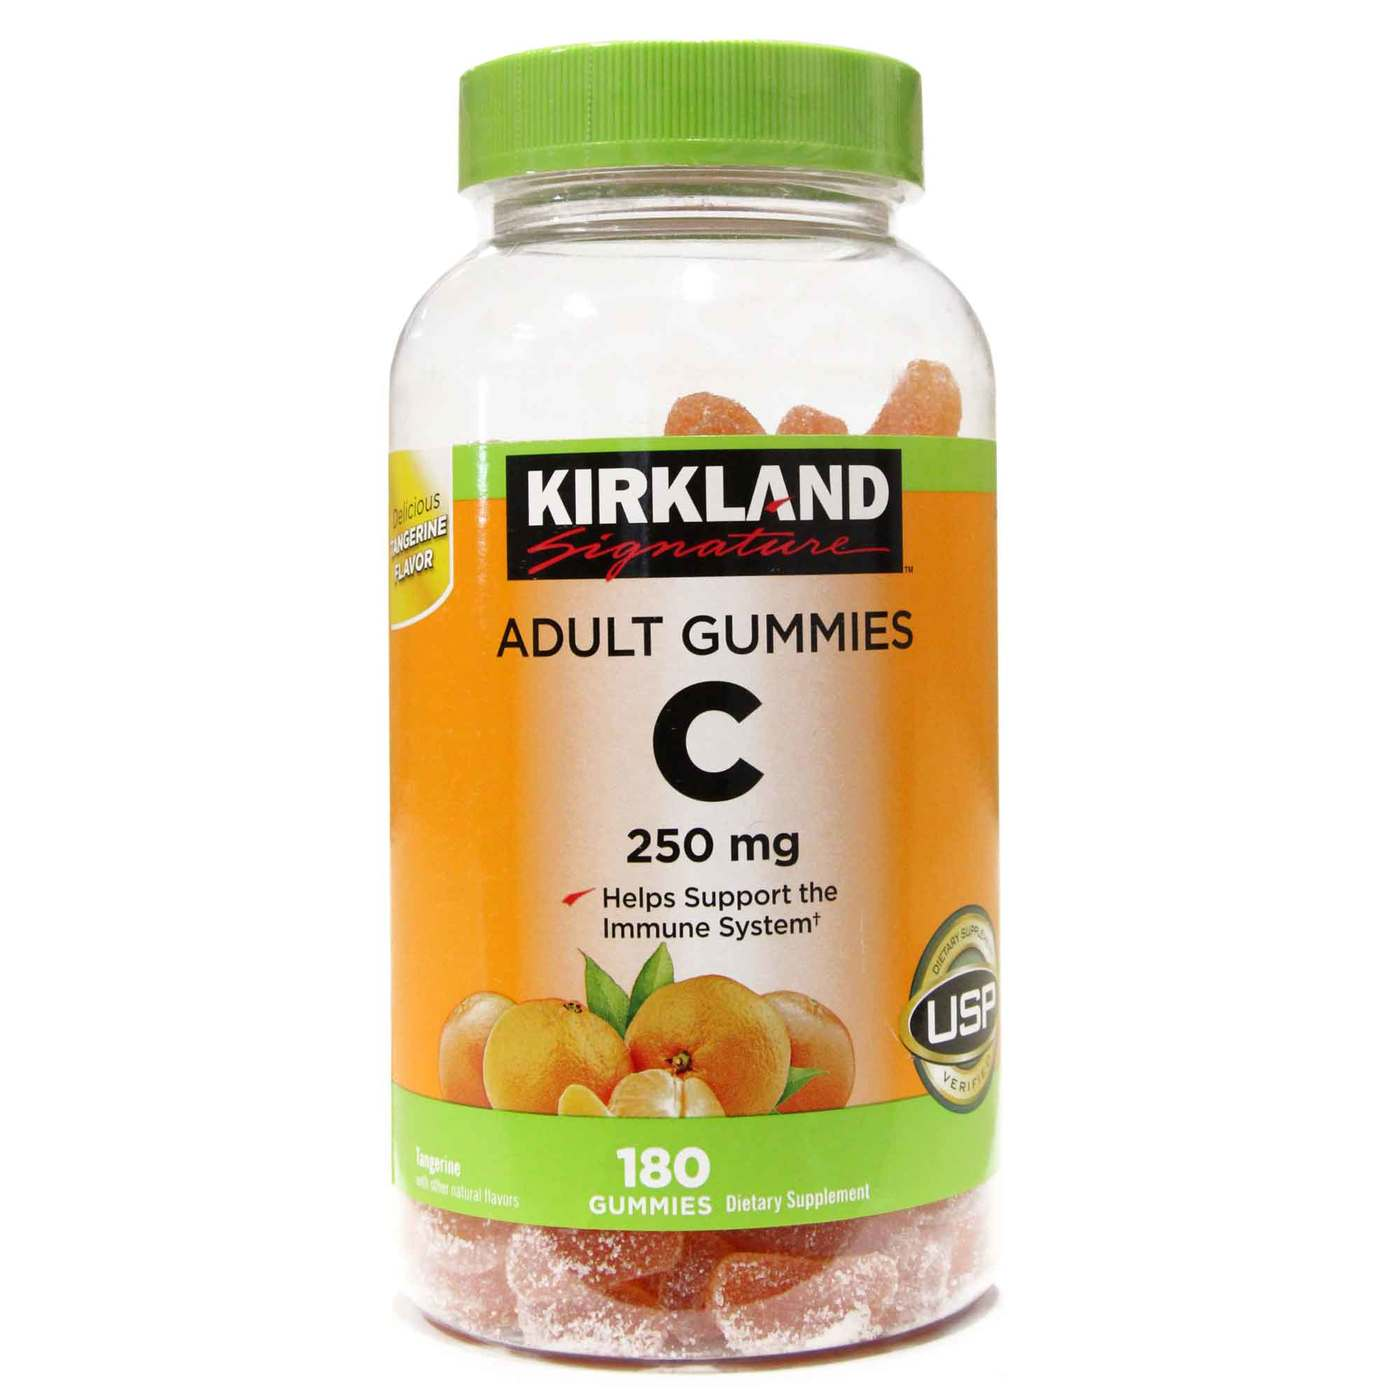 Kirkland Signature Vitamin C Adult Gummies - 250 mg - 180